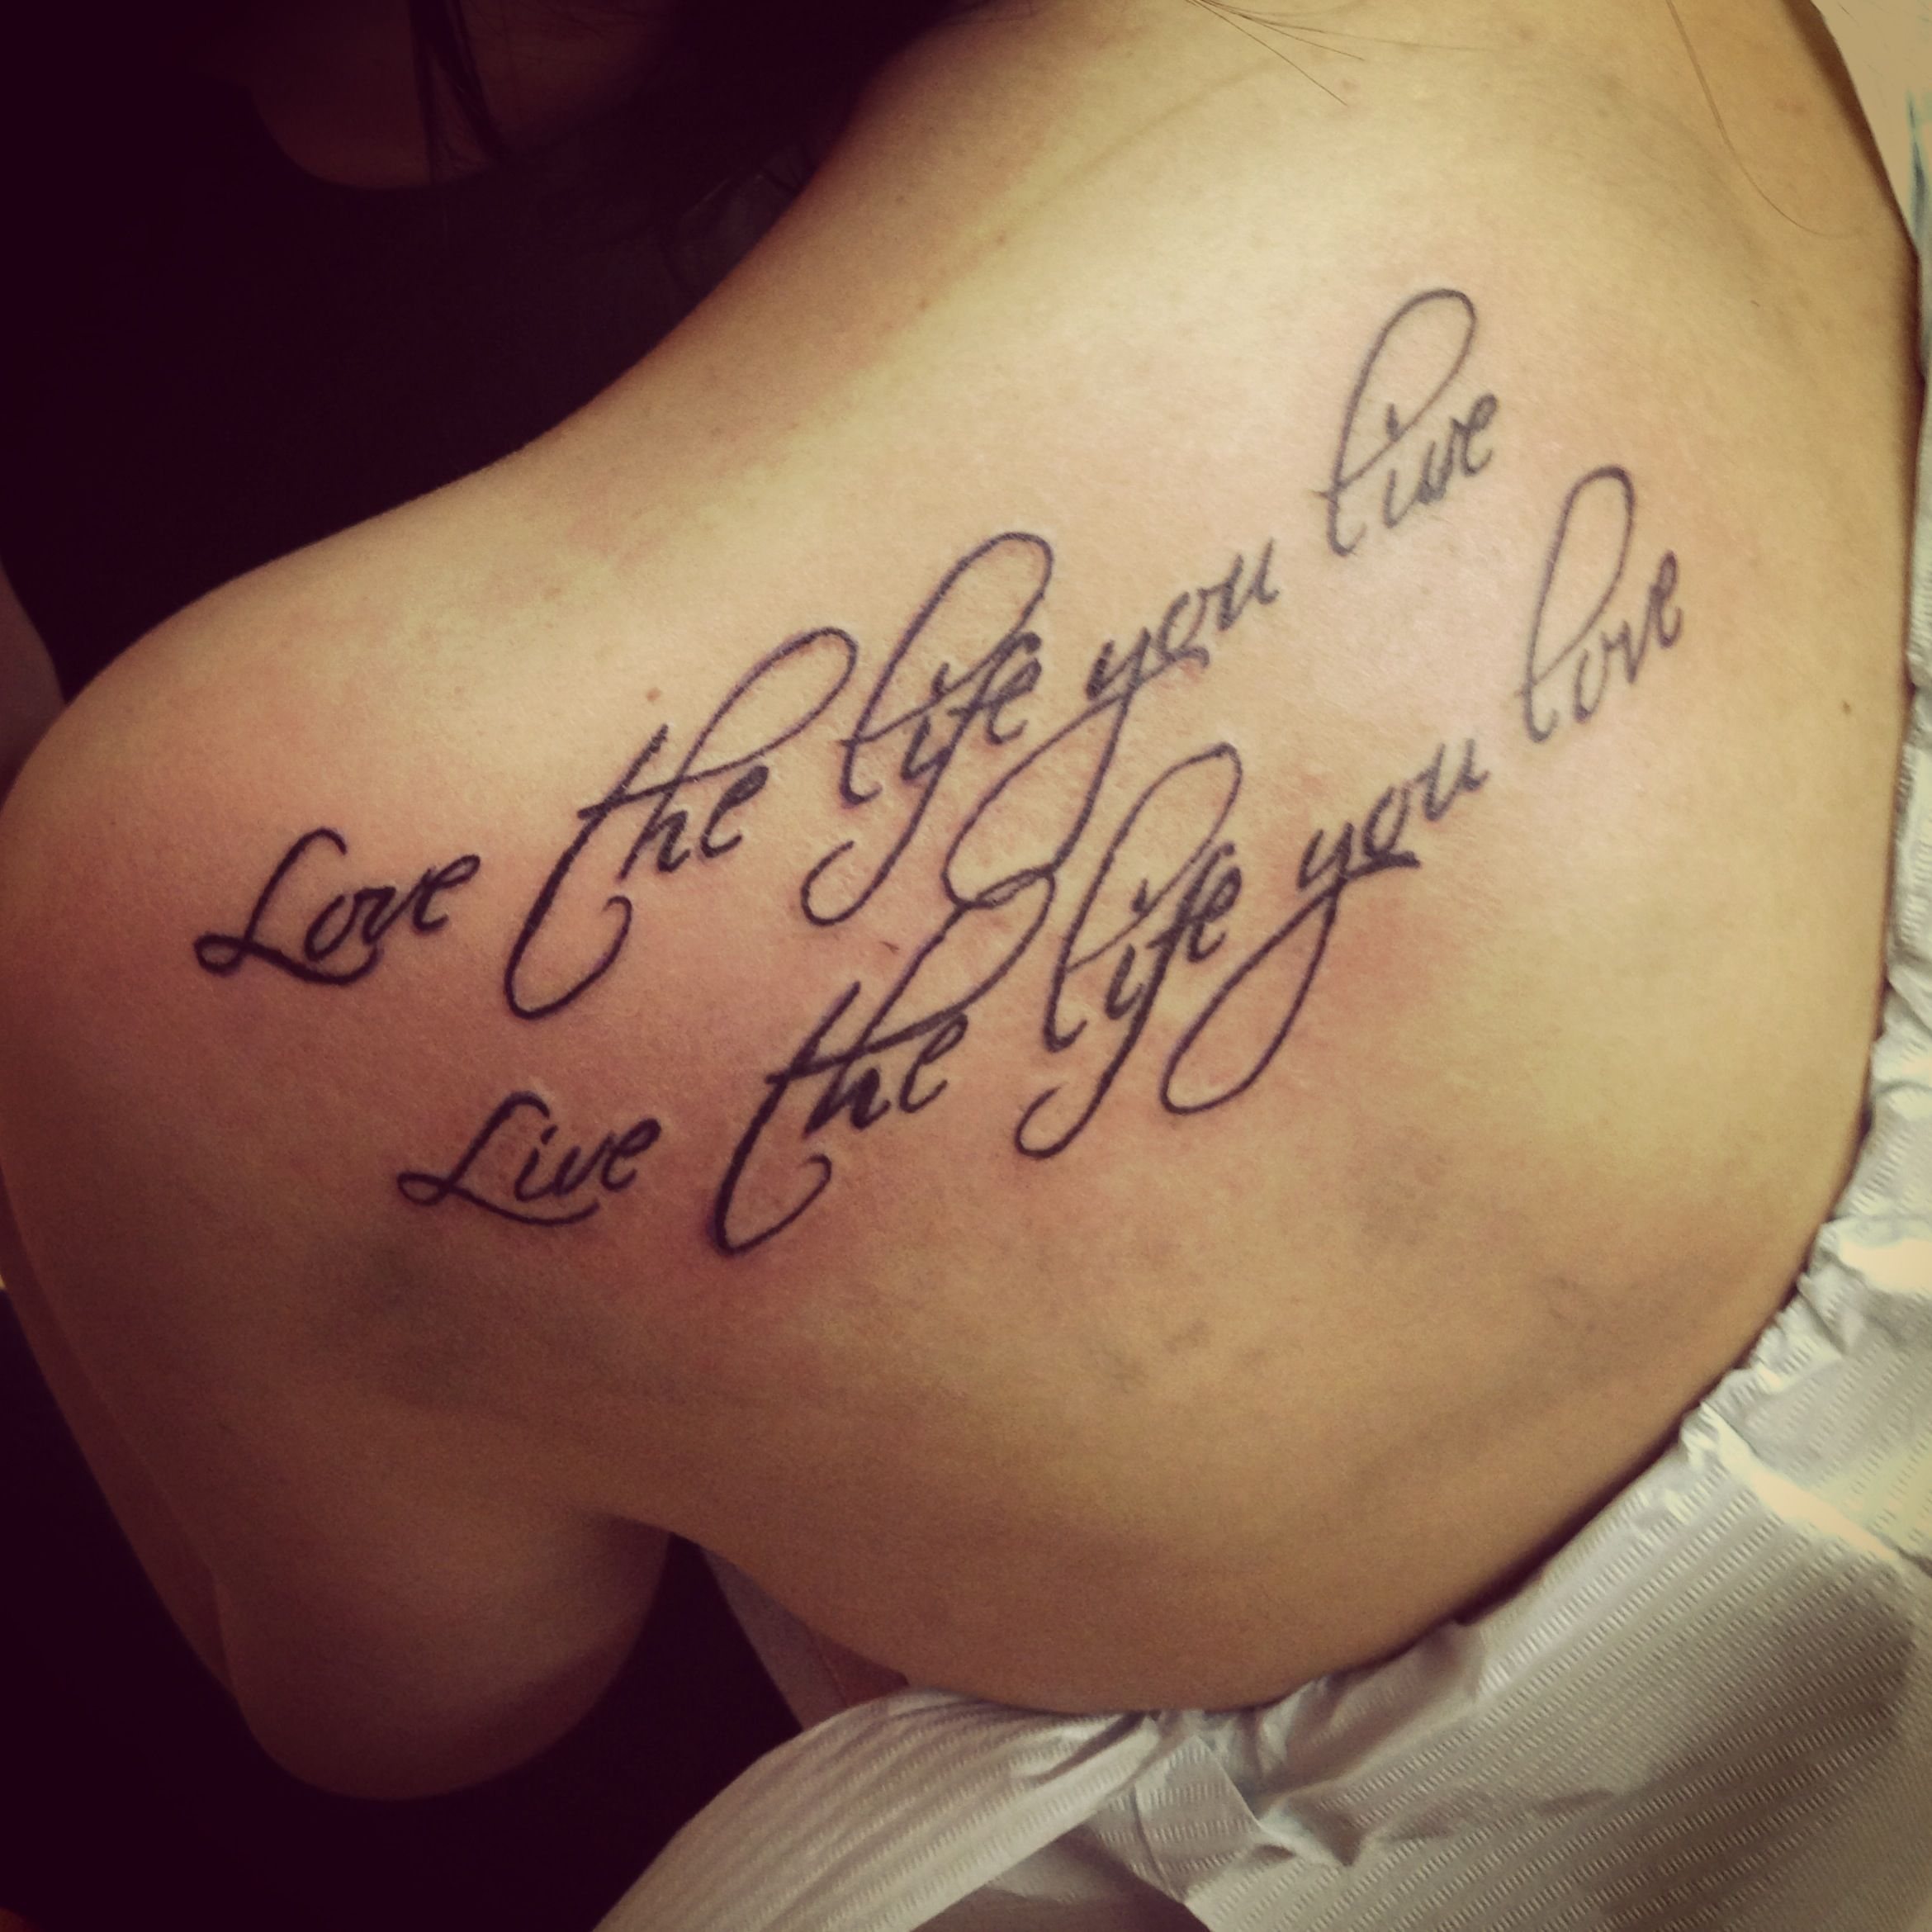 My New Tattoo Love The Life You Live Live The Life You Love